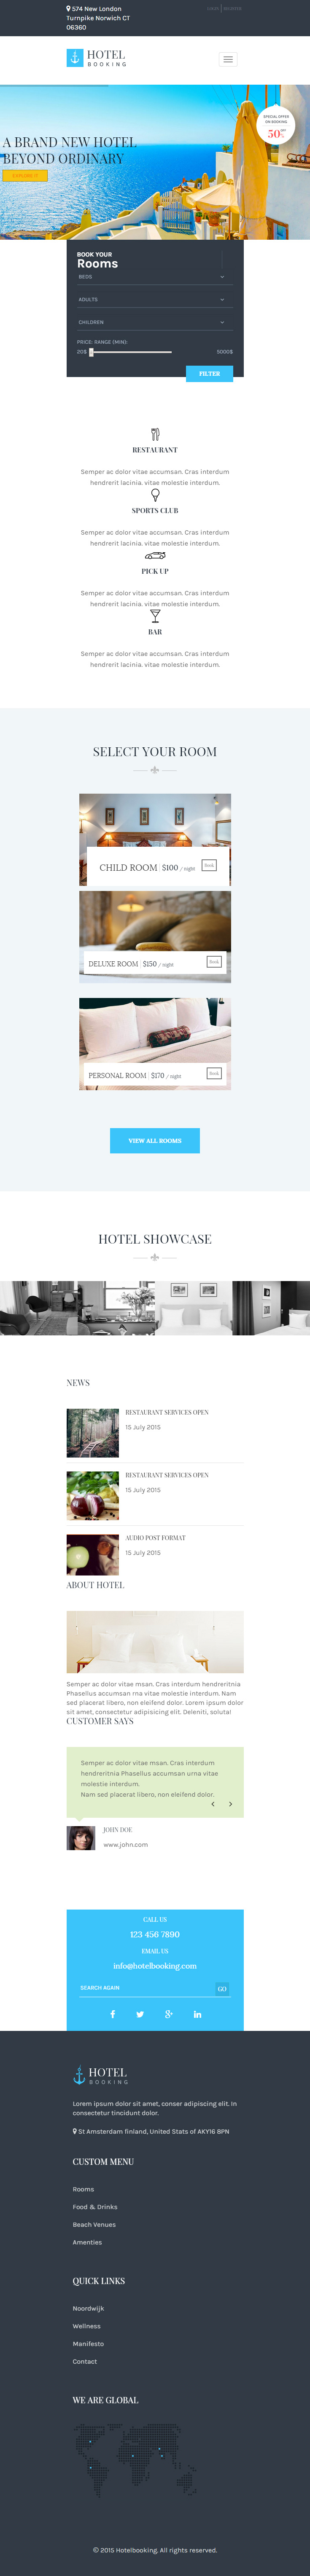 Hotel booking premium responsive wordpress theme for hotels for Tablet hotel booking